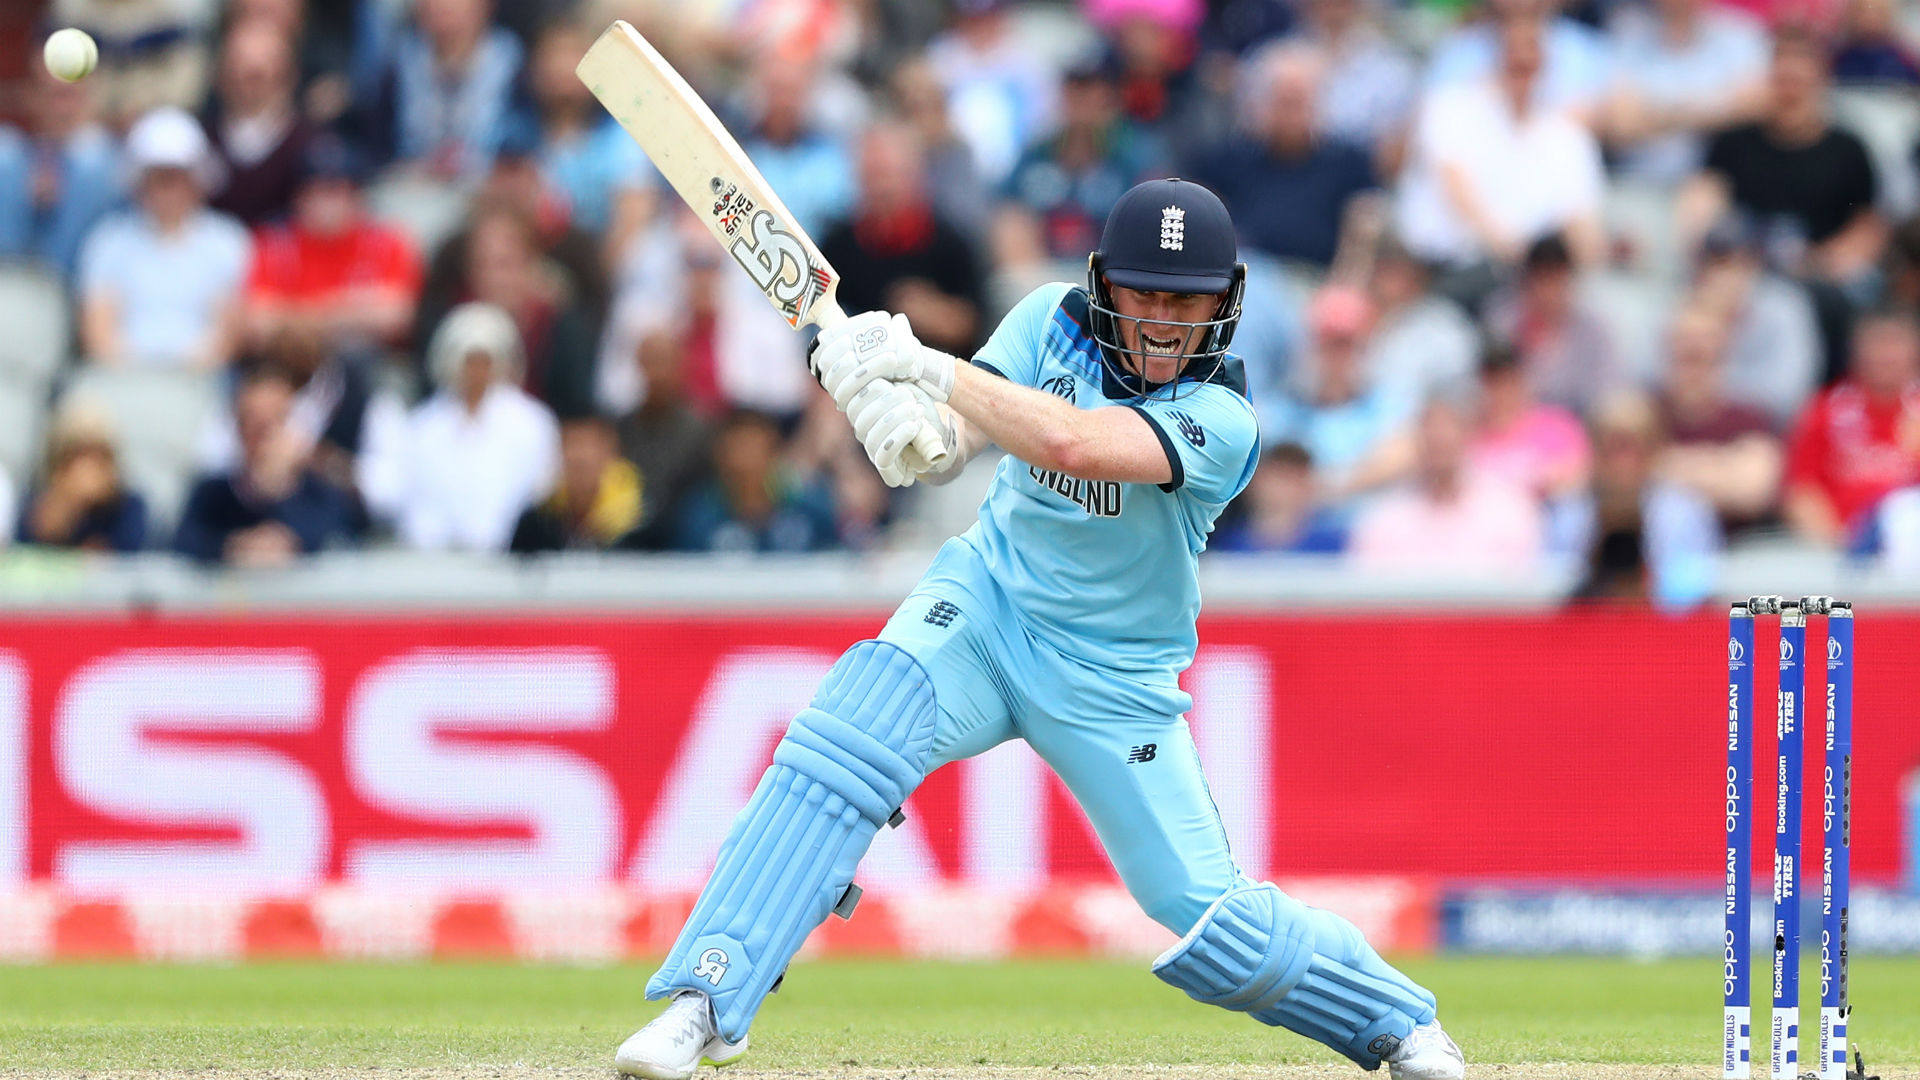 Omnisport looks back at week three of the Cricket World Cup, which featured a noisy India-Pakistan clash and a world record for Eoin Morgan.